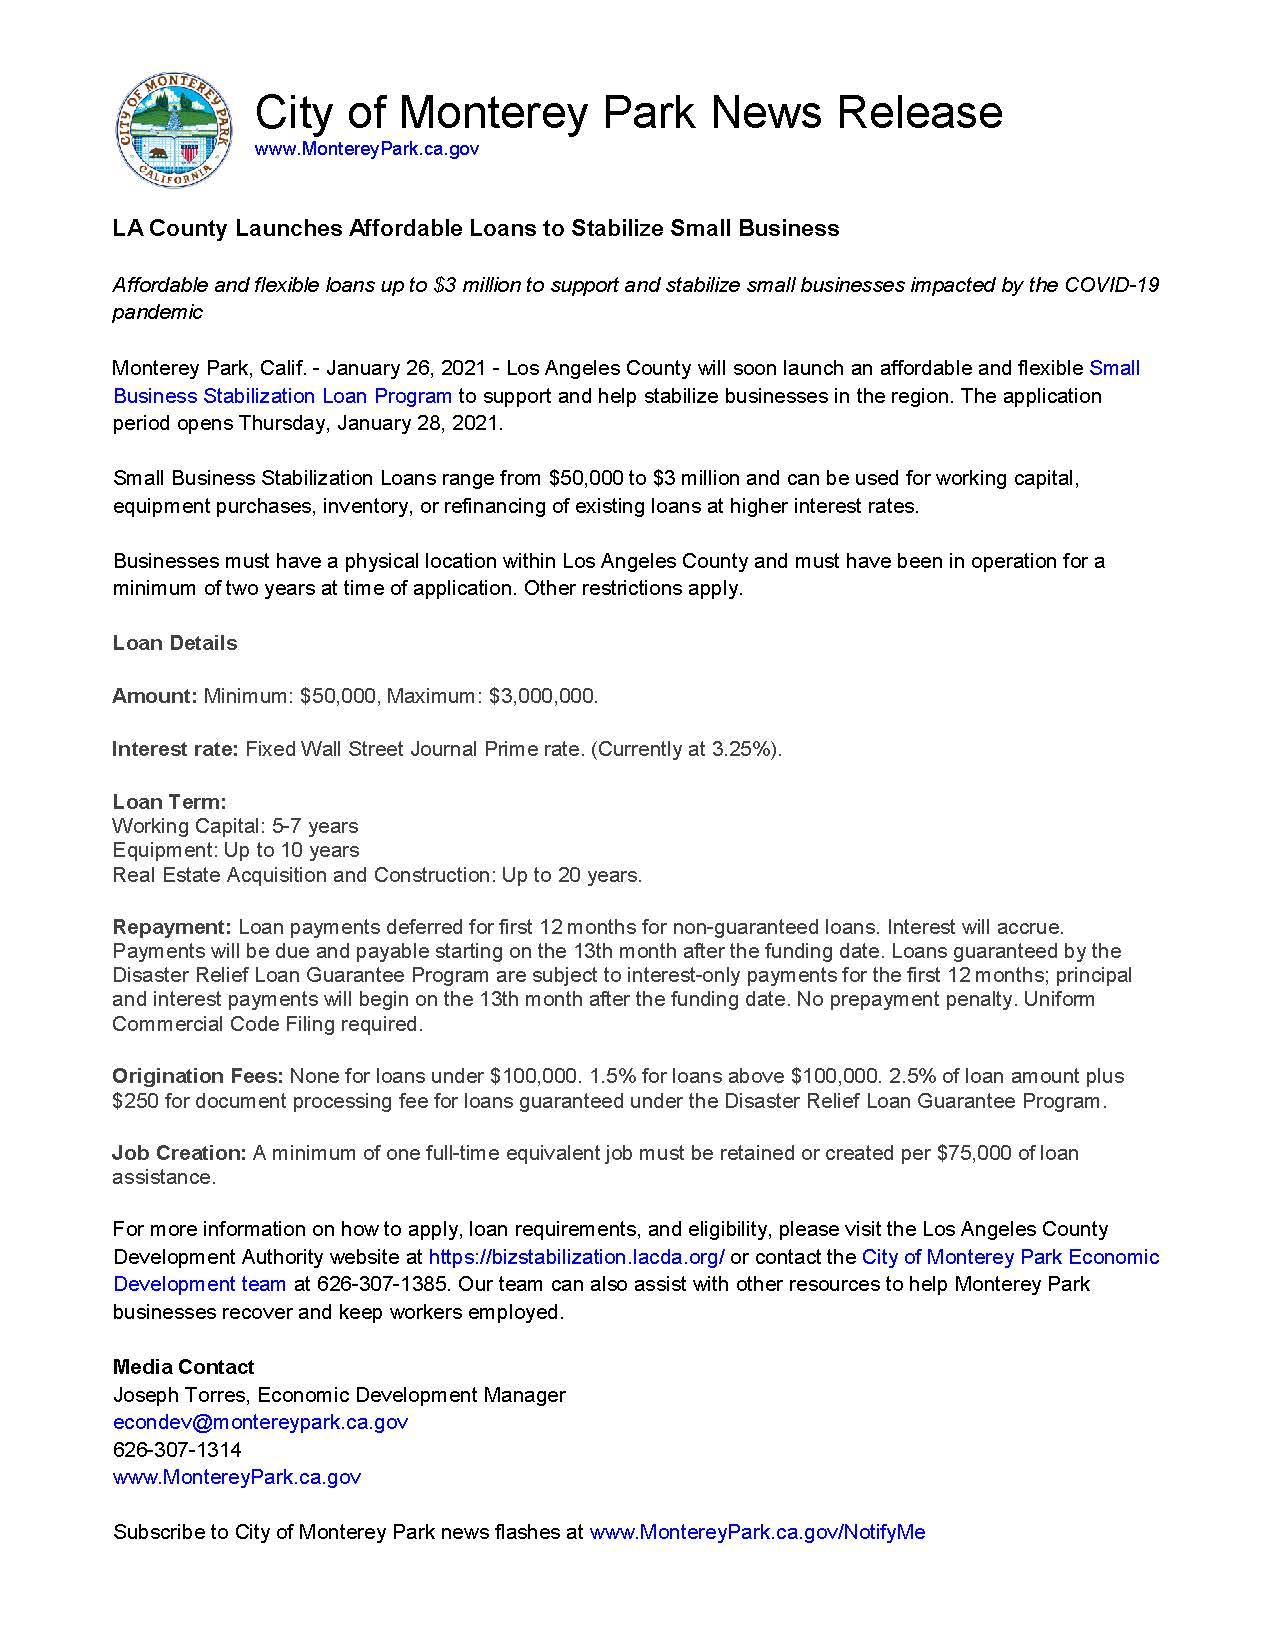 MPK News Release - LA County Small Business Stabilization Loan Program